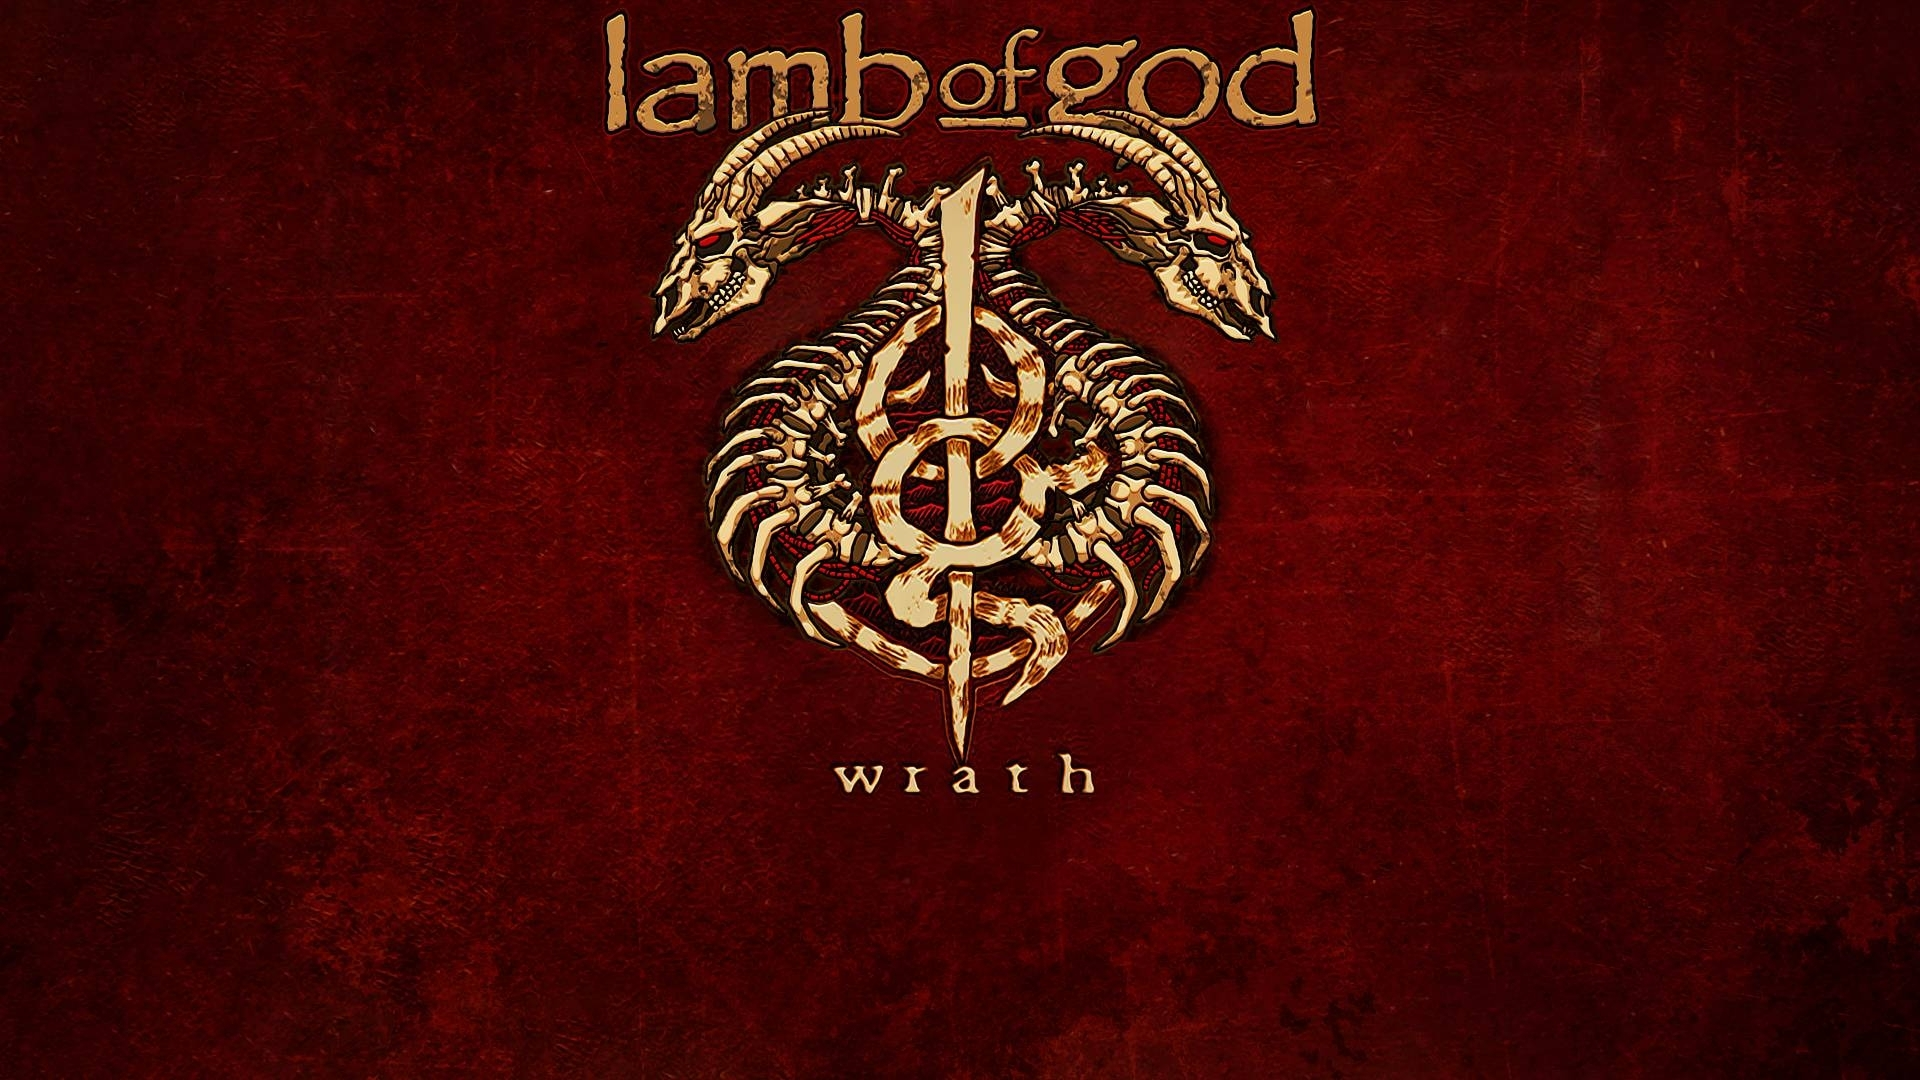 lamb of god wallpapers 2015 - wallpaper cave